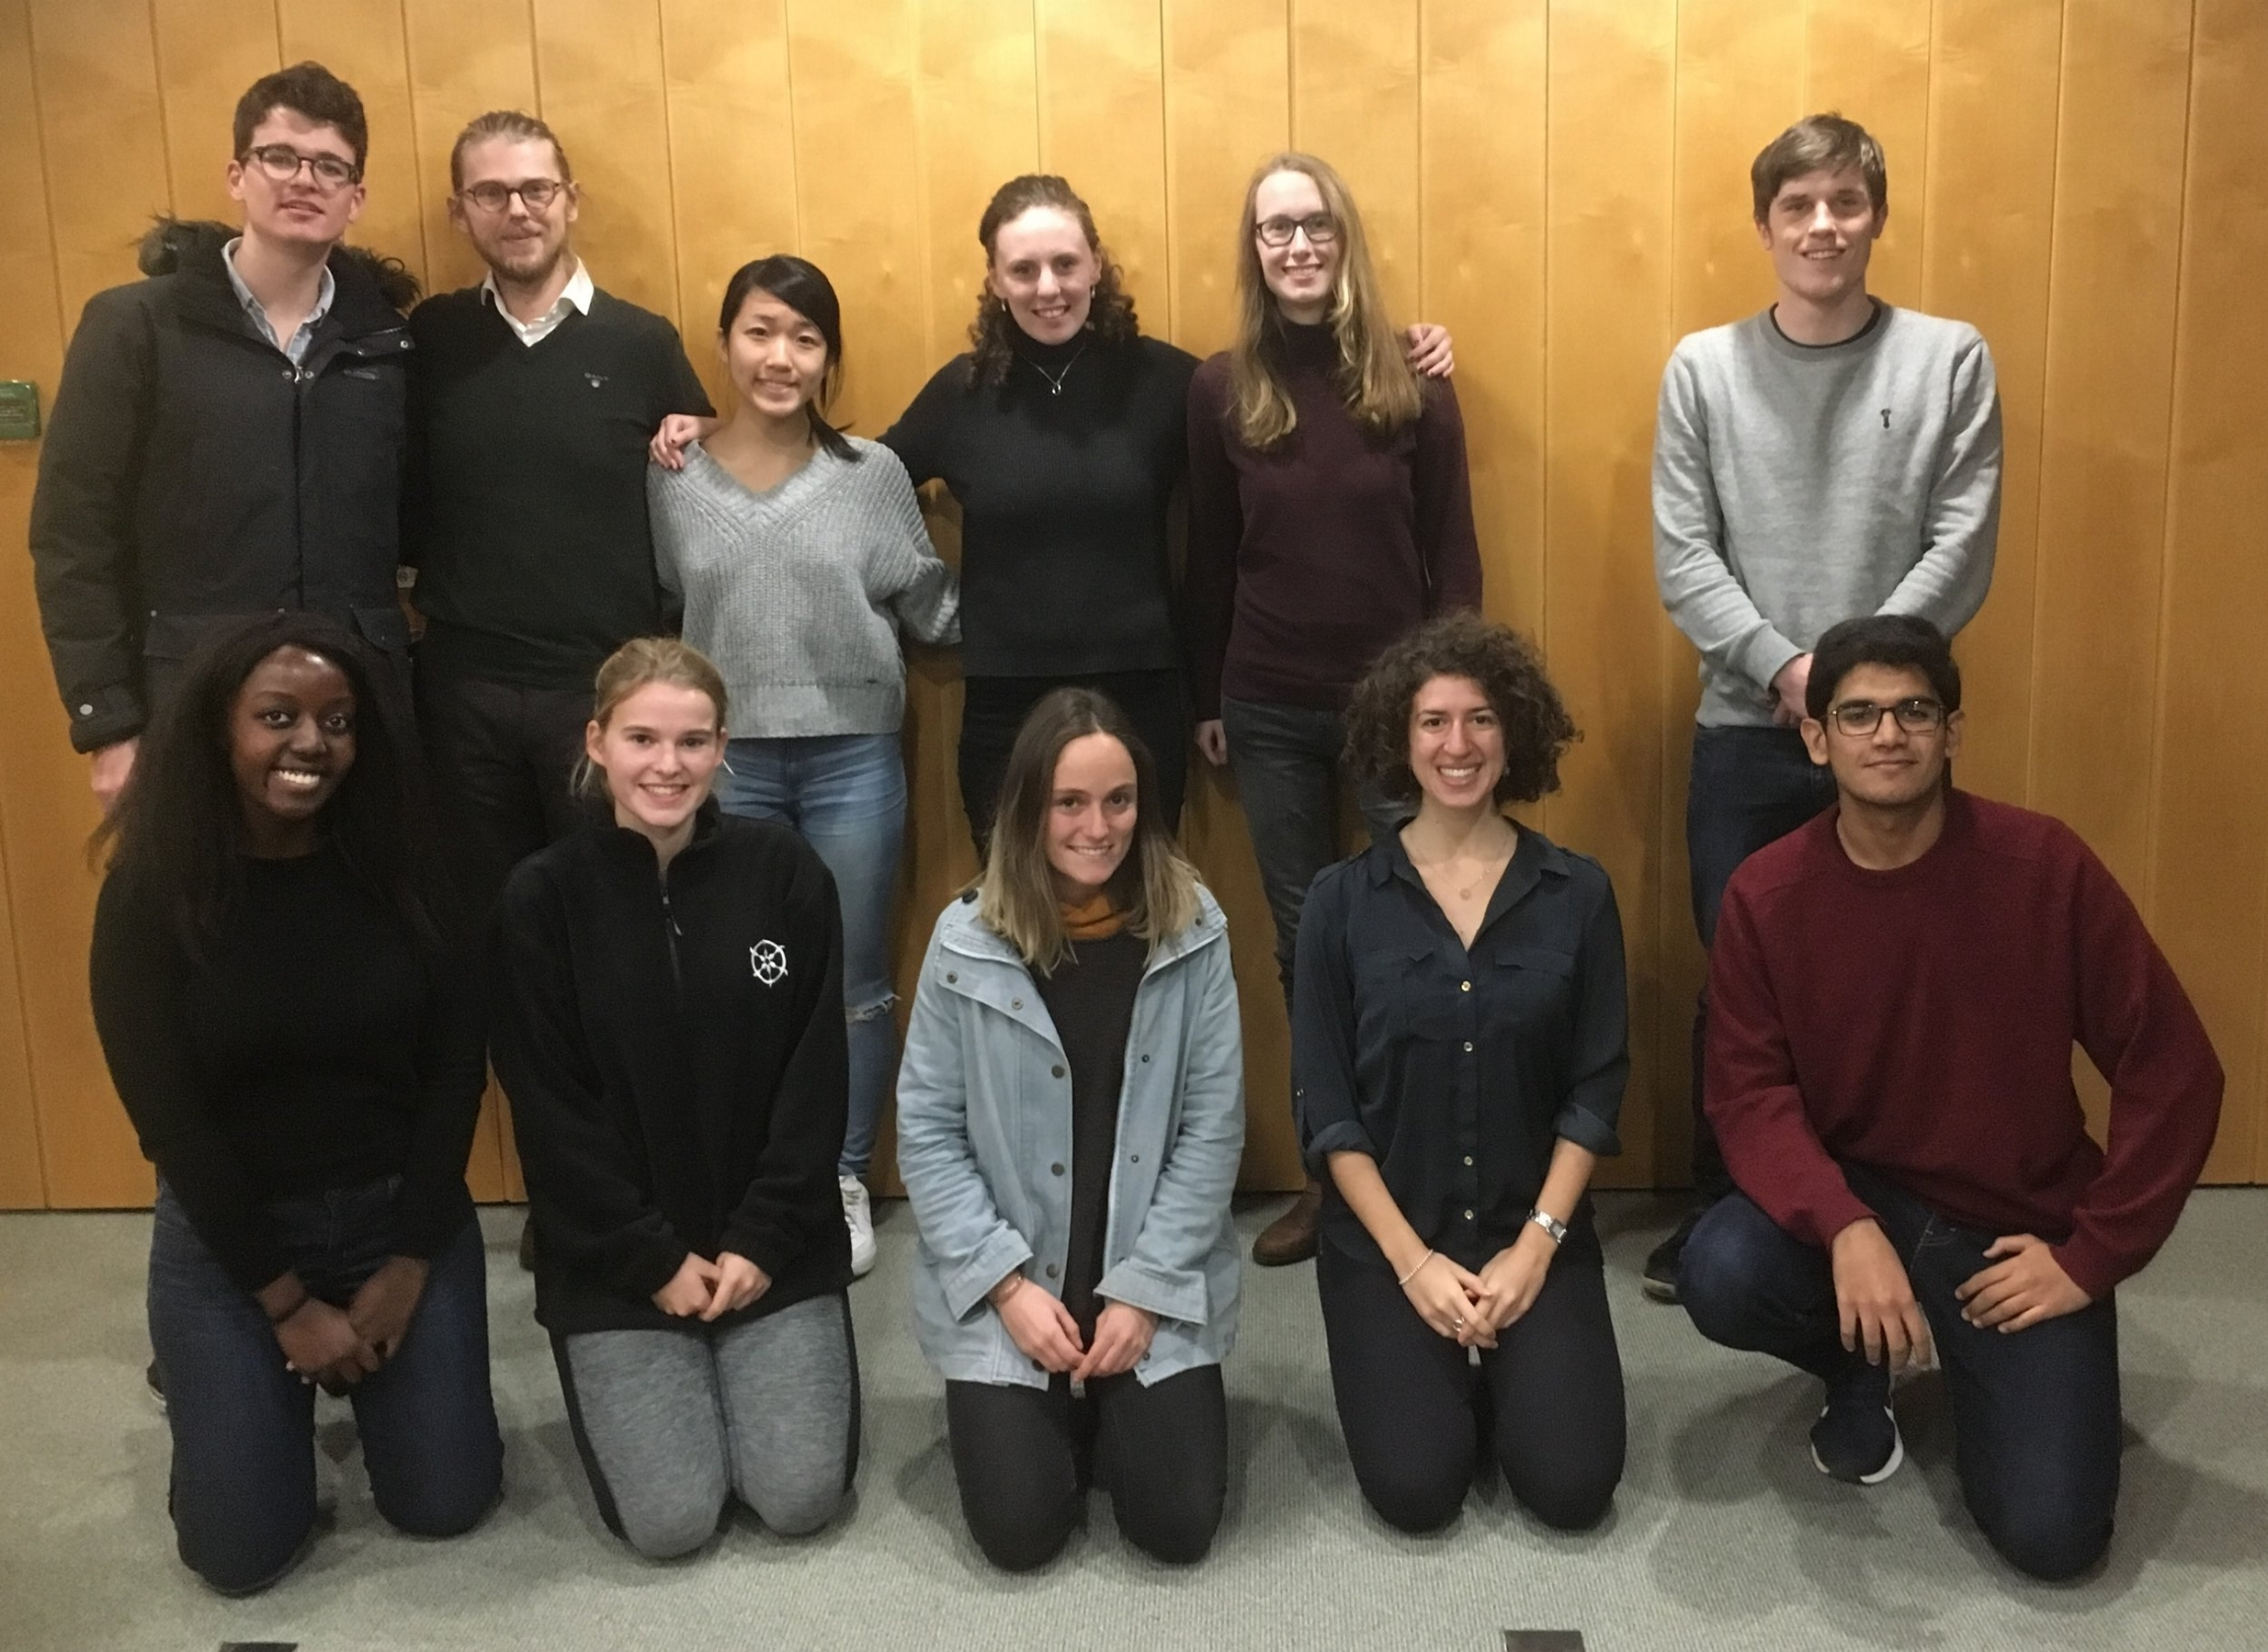 We are excited to introduce our new 2018 committee for Kite Oxford! This year, we have increased in numbers and grown from 8 to 14 members. An exciting year lies ahead: In addition to our project 'Giving Jiggers the Boot', we will start piloting our student mentorship scheme in January! We are especially looking forward to continuing our close work with our partner committee in Nairobi on our current and new projects and will visit them in the upcoming months.